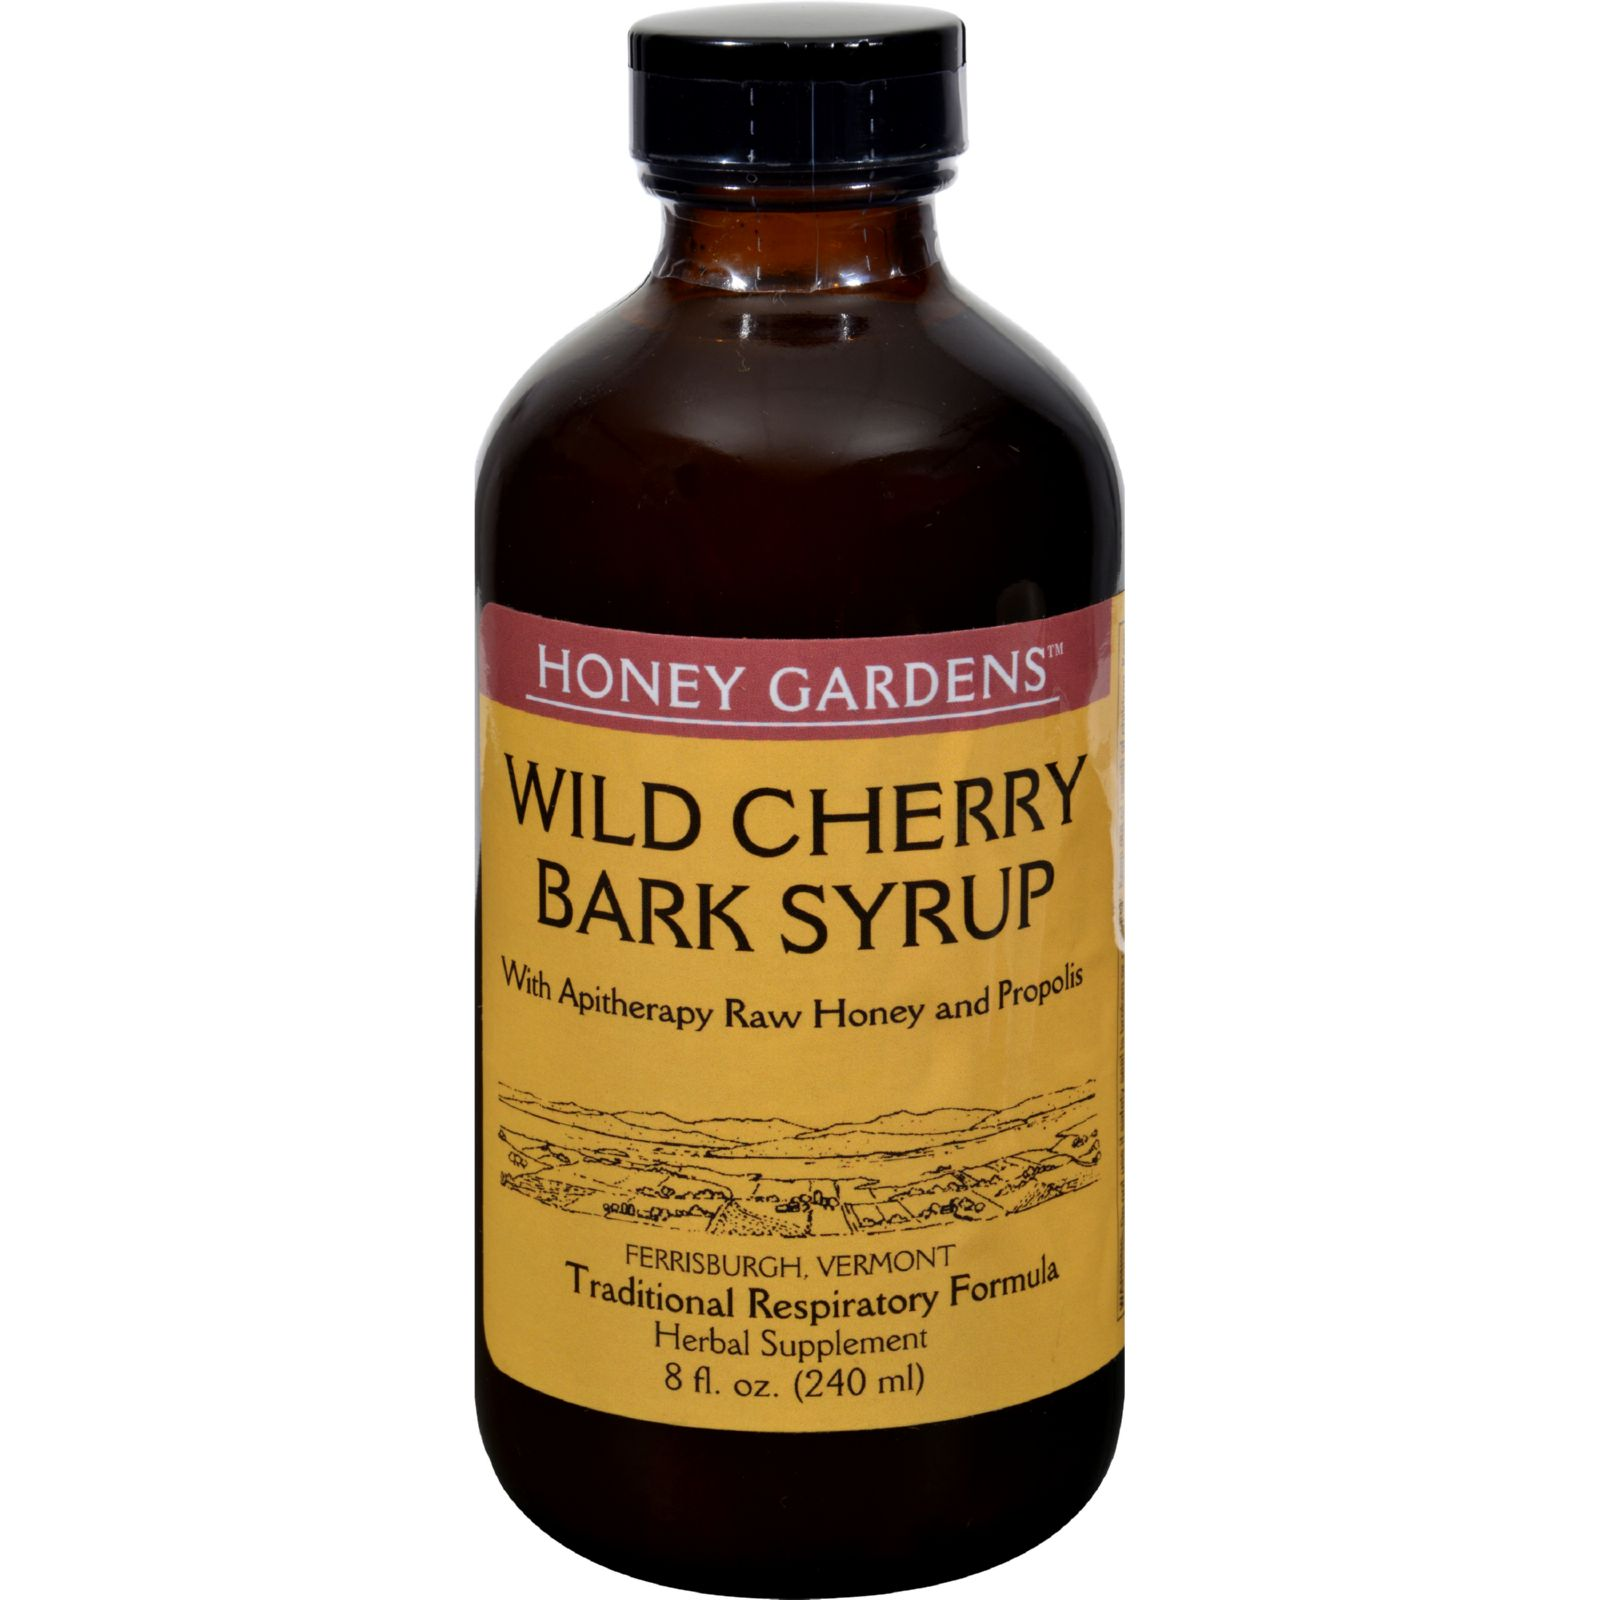 Honey Gardens Apiaries Honey Wild Cherry Bark Syrup - 8 fl oz